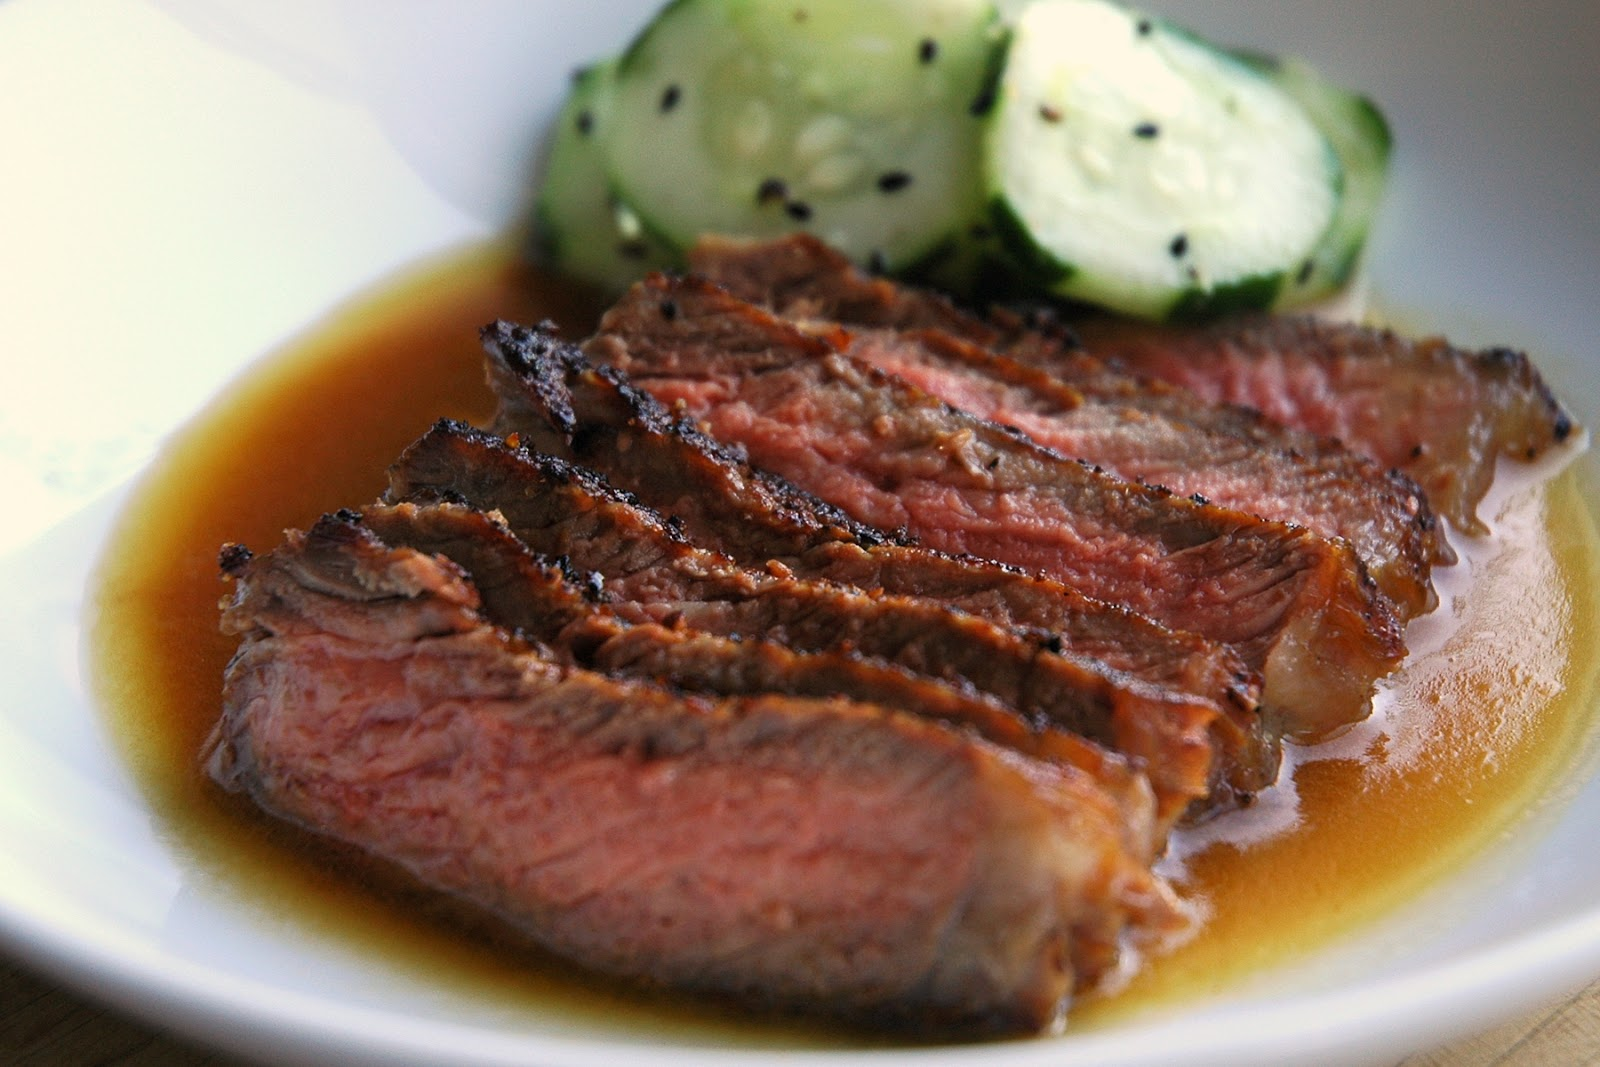 ... up with this quick and easy recipe for Seared Steak with Ponzu Sauce